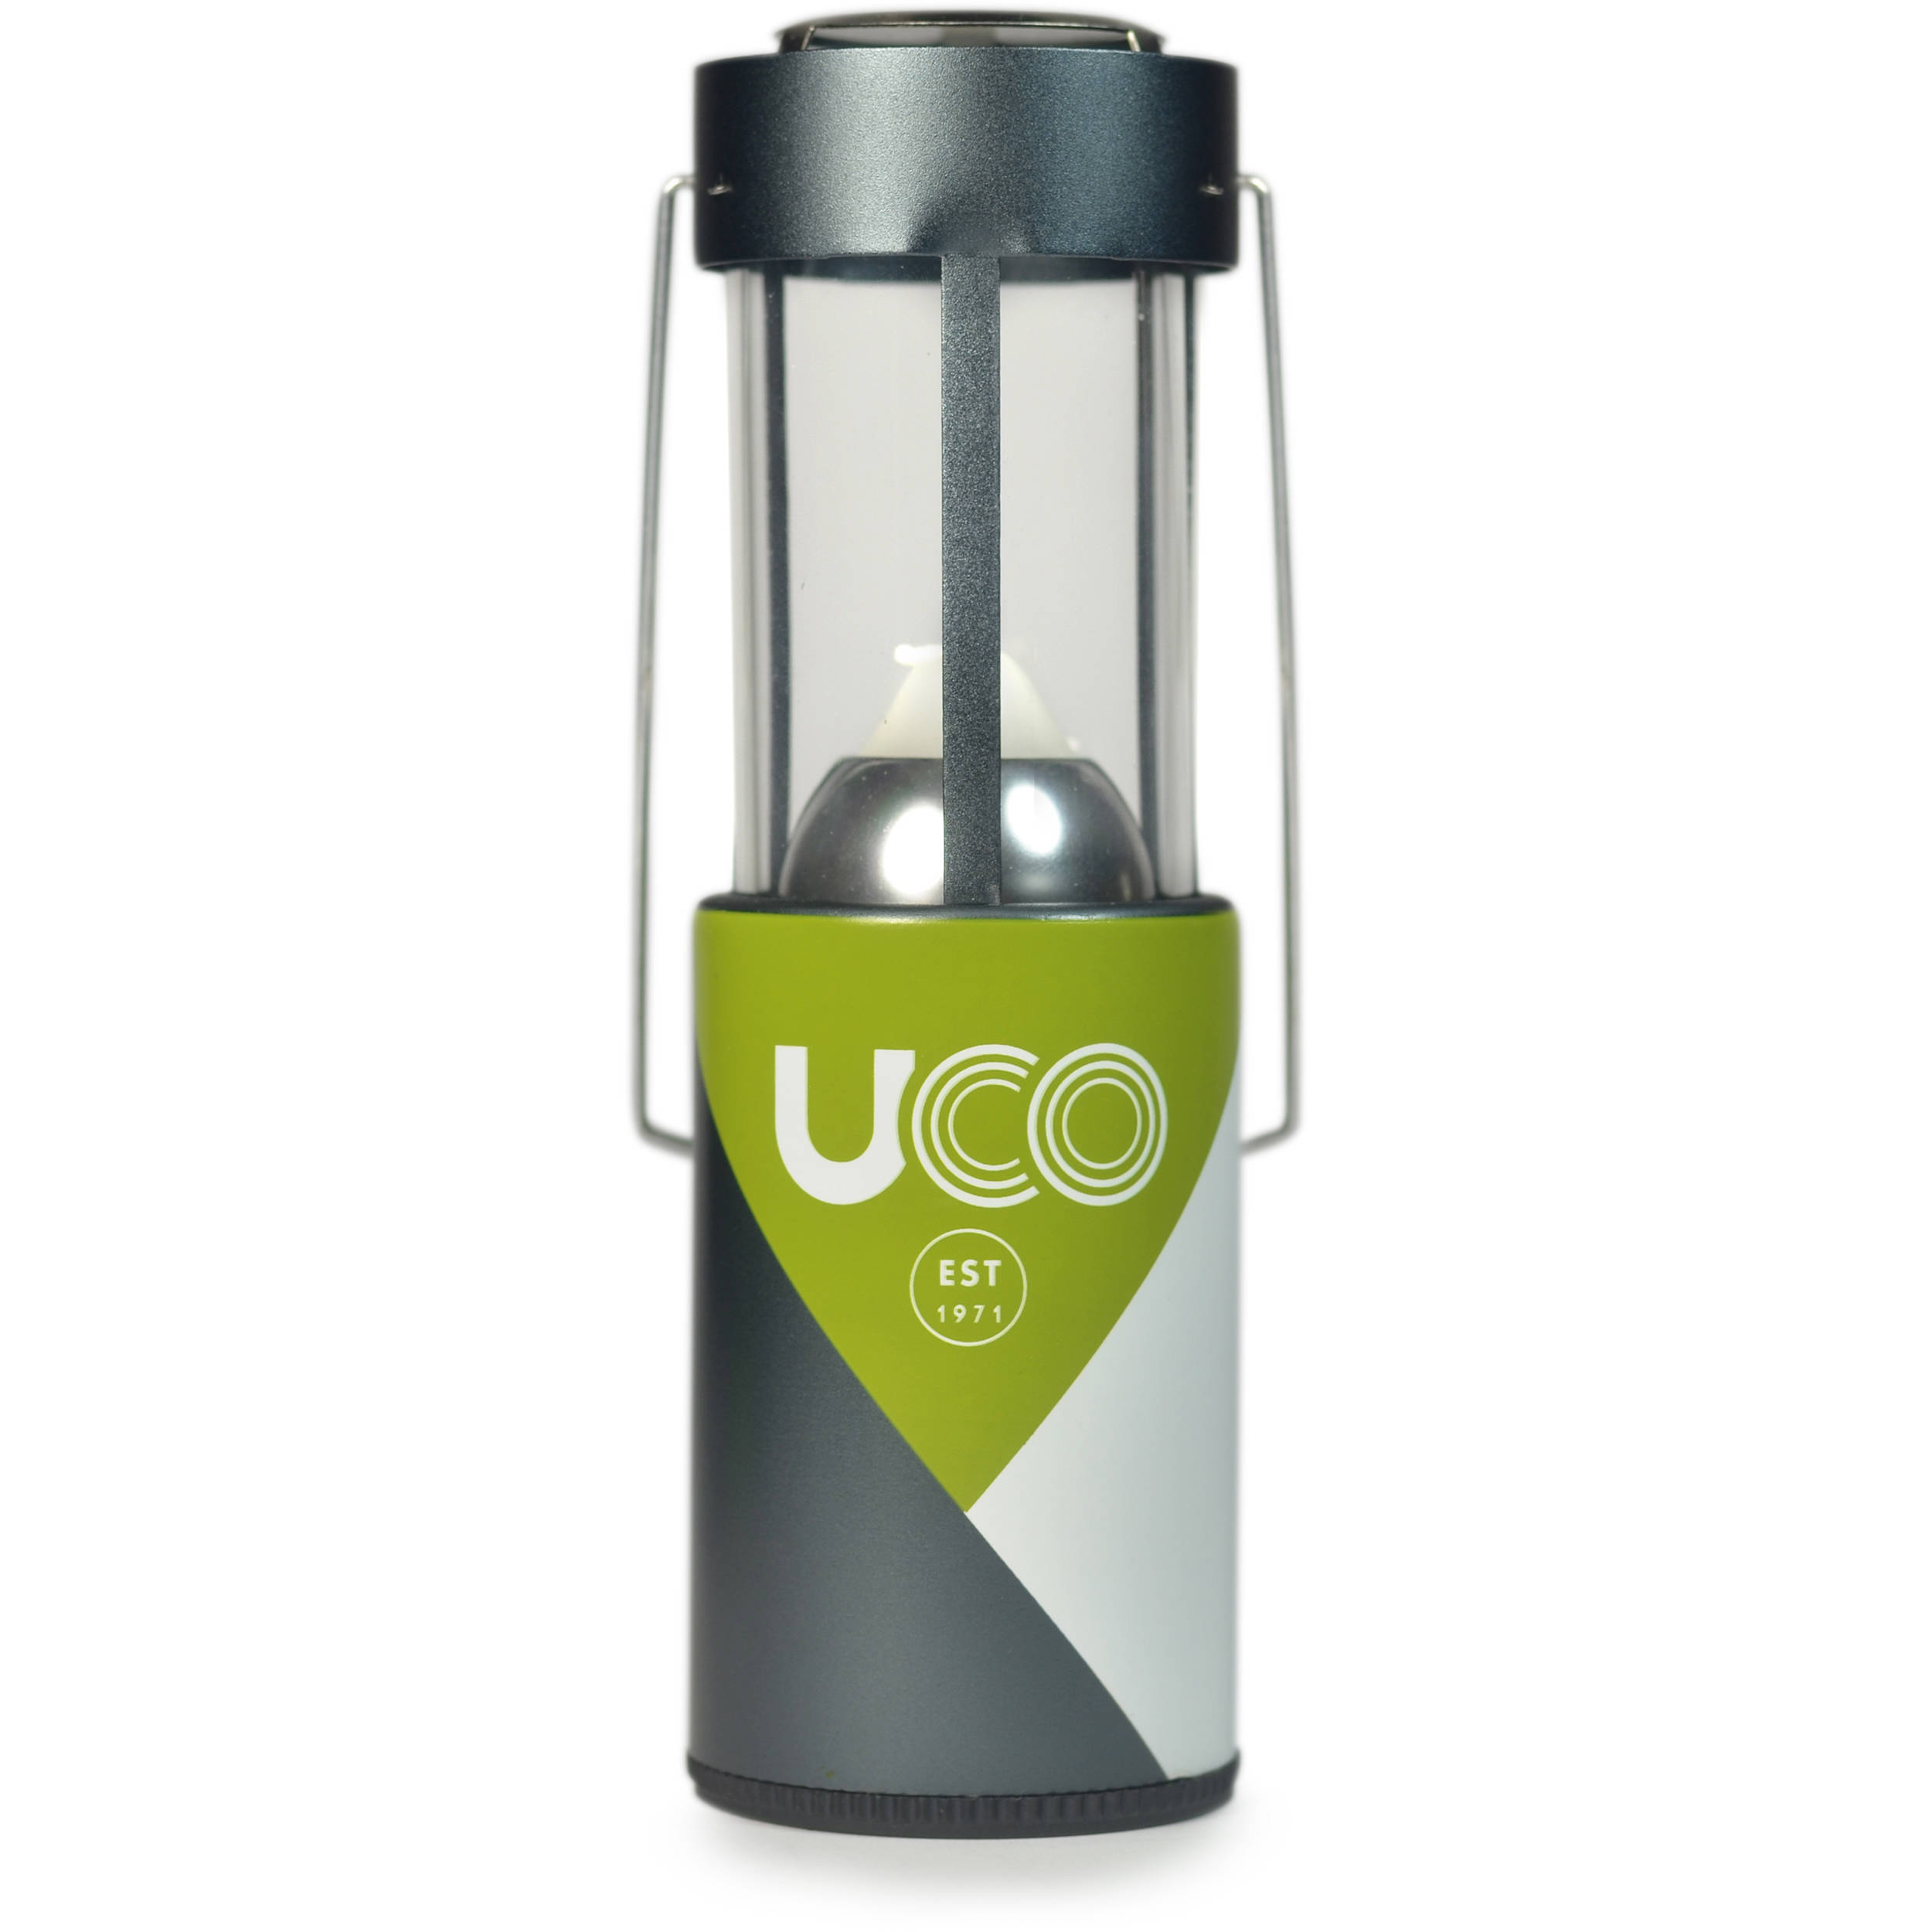 UCO Original Candle Lantern (Wild) L-C-W B&H Photo Video